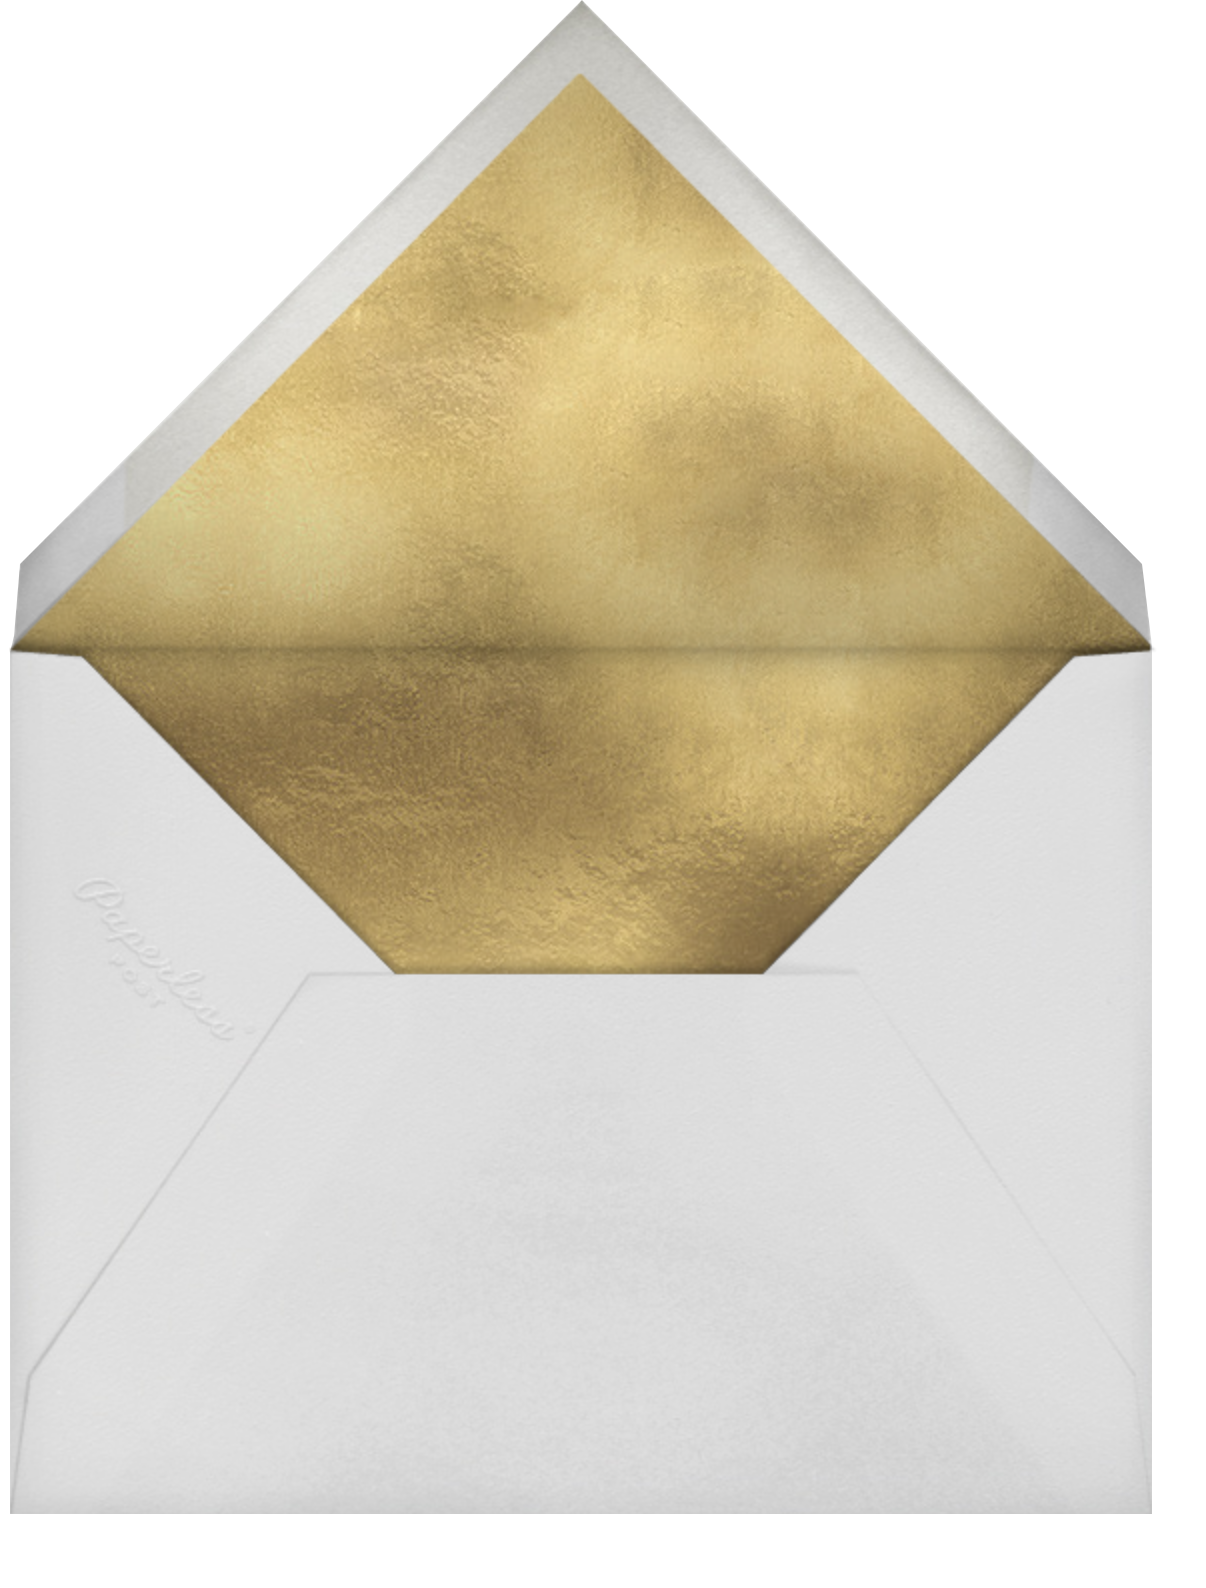 Rouge Valentine's Day - Rifle Paper Co. - Envelope